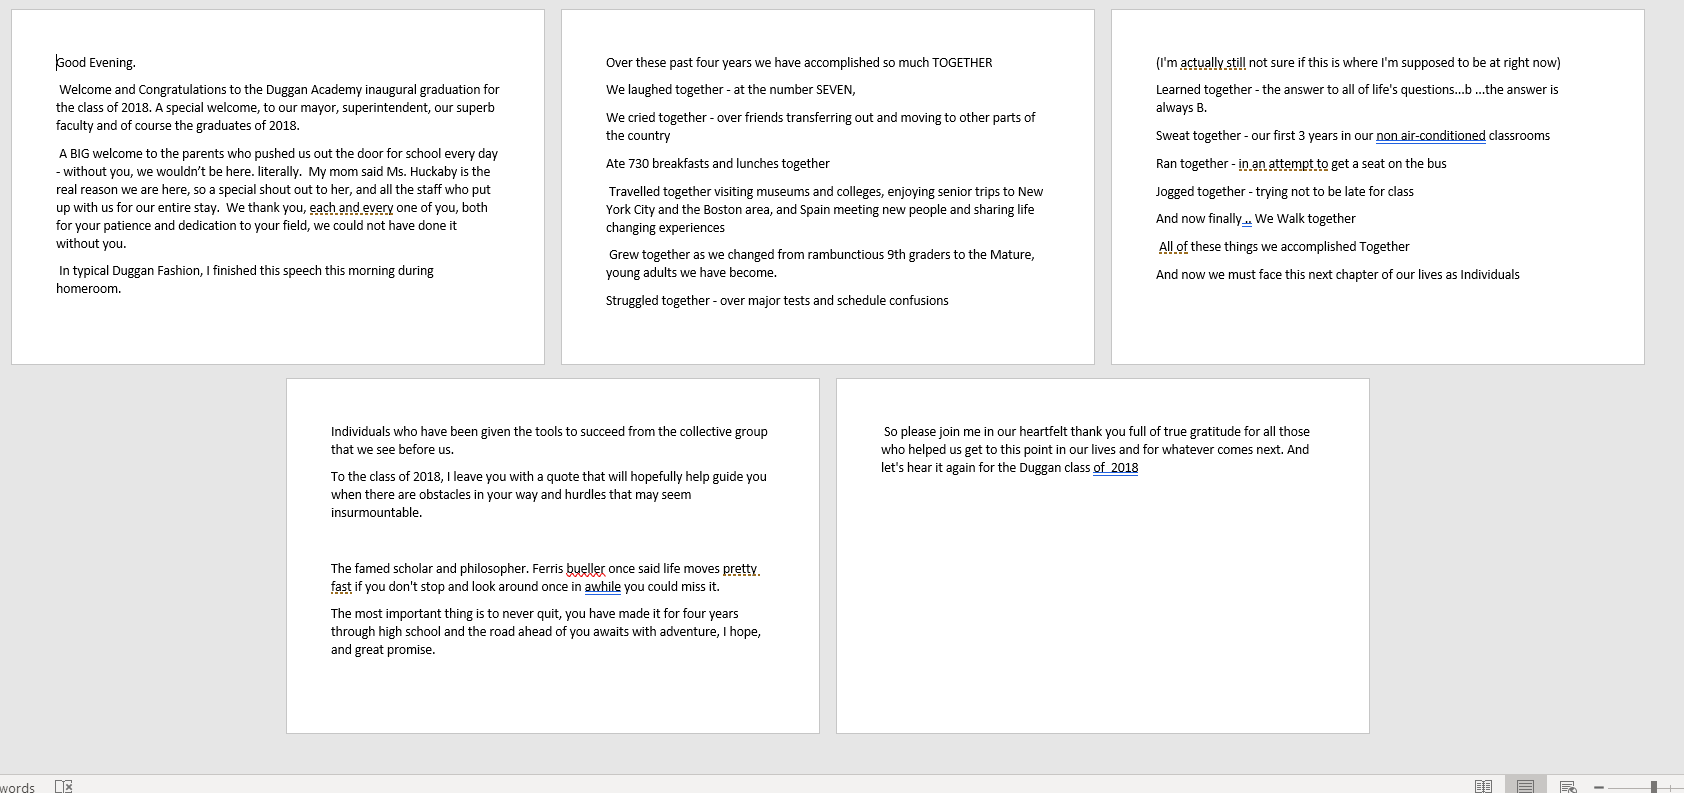 Printing Out Index Card Size On Letter Paper. - Microsoft Community Regarding 3x5 Note Card Template For Word